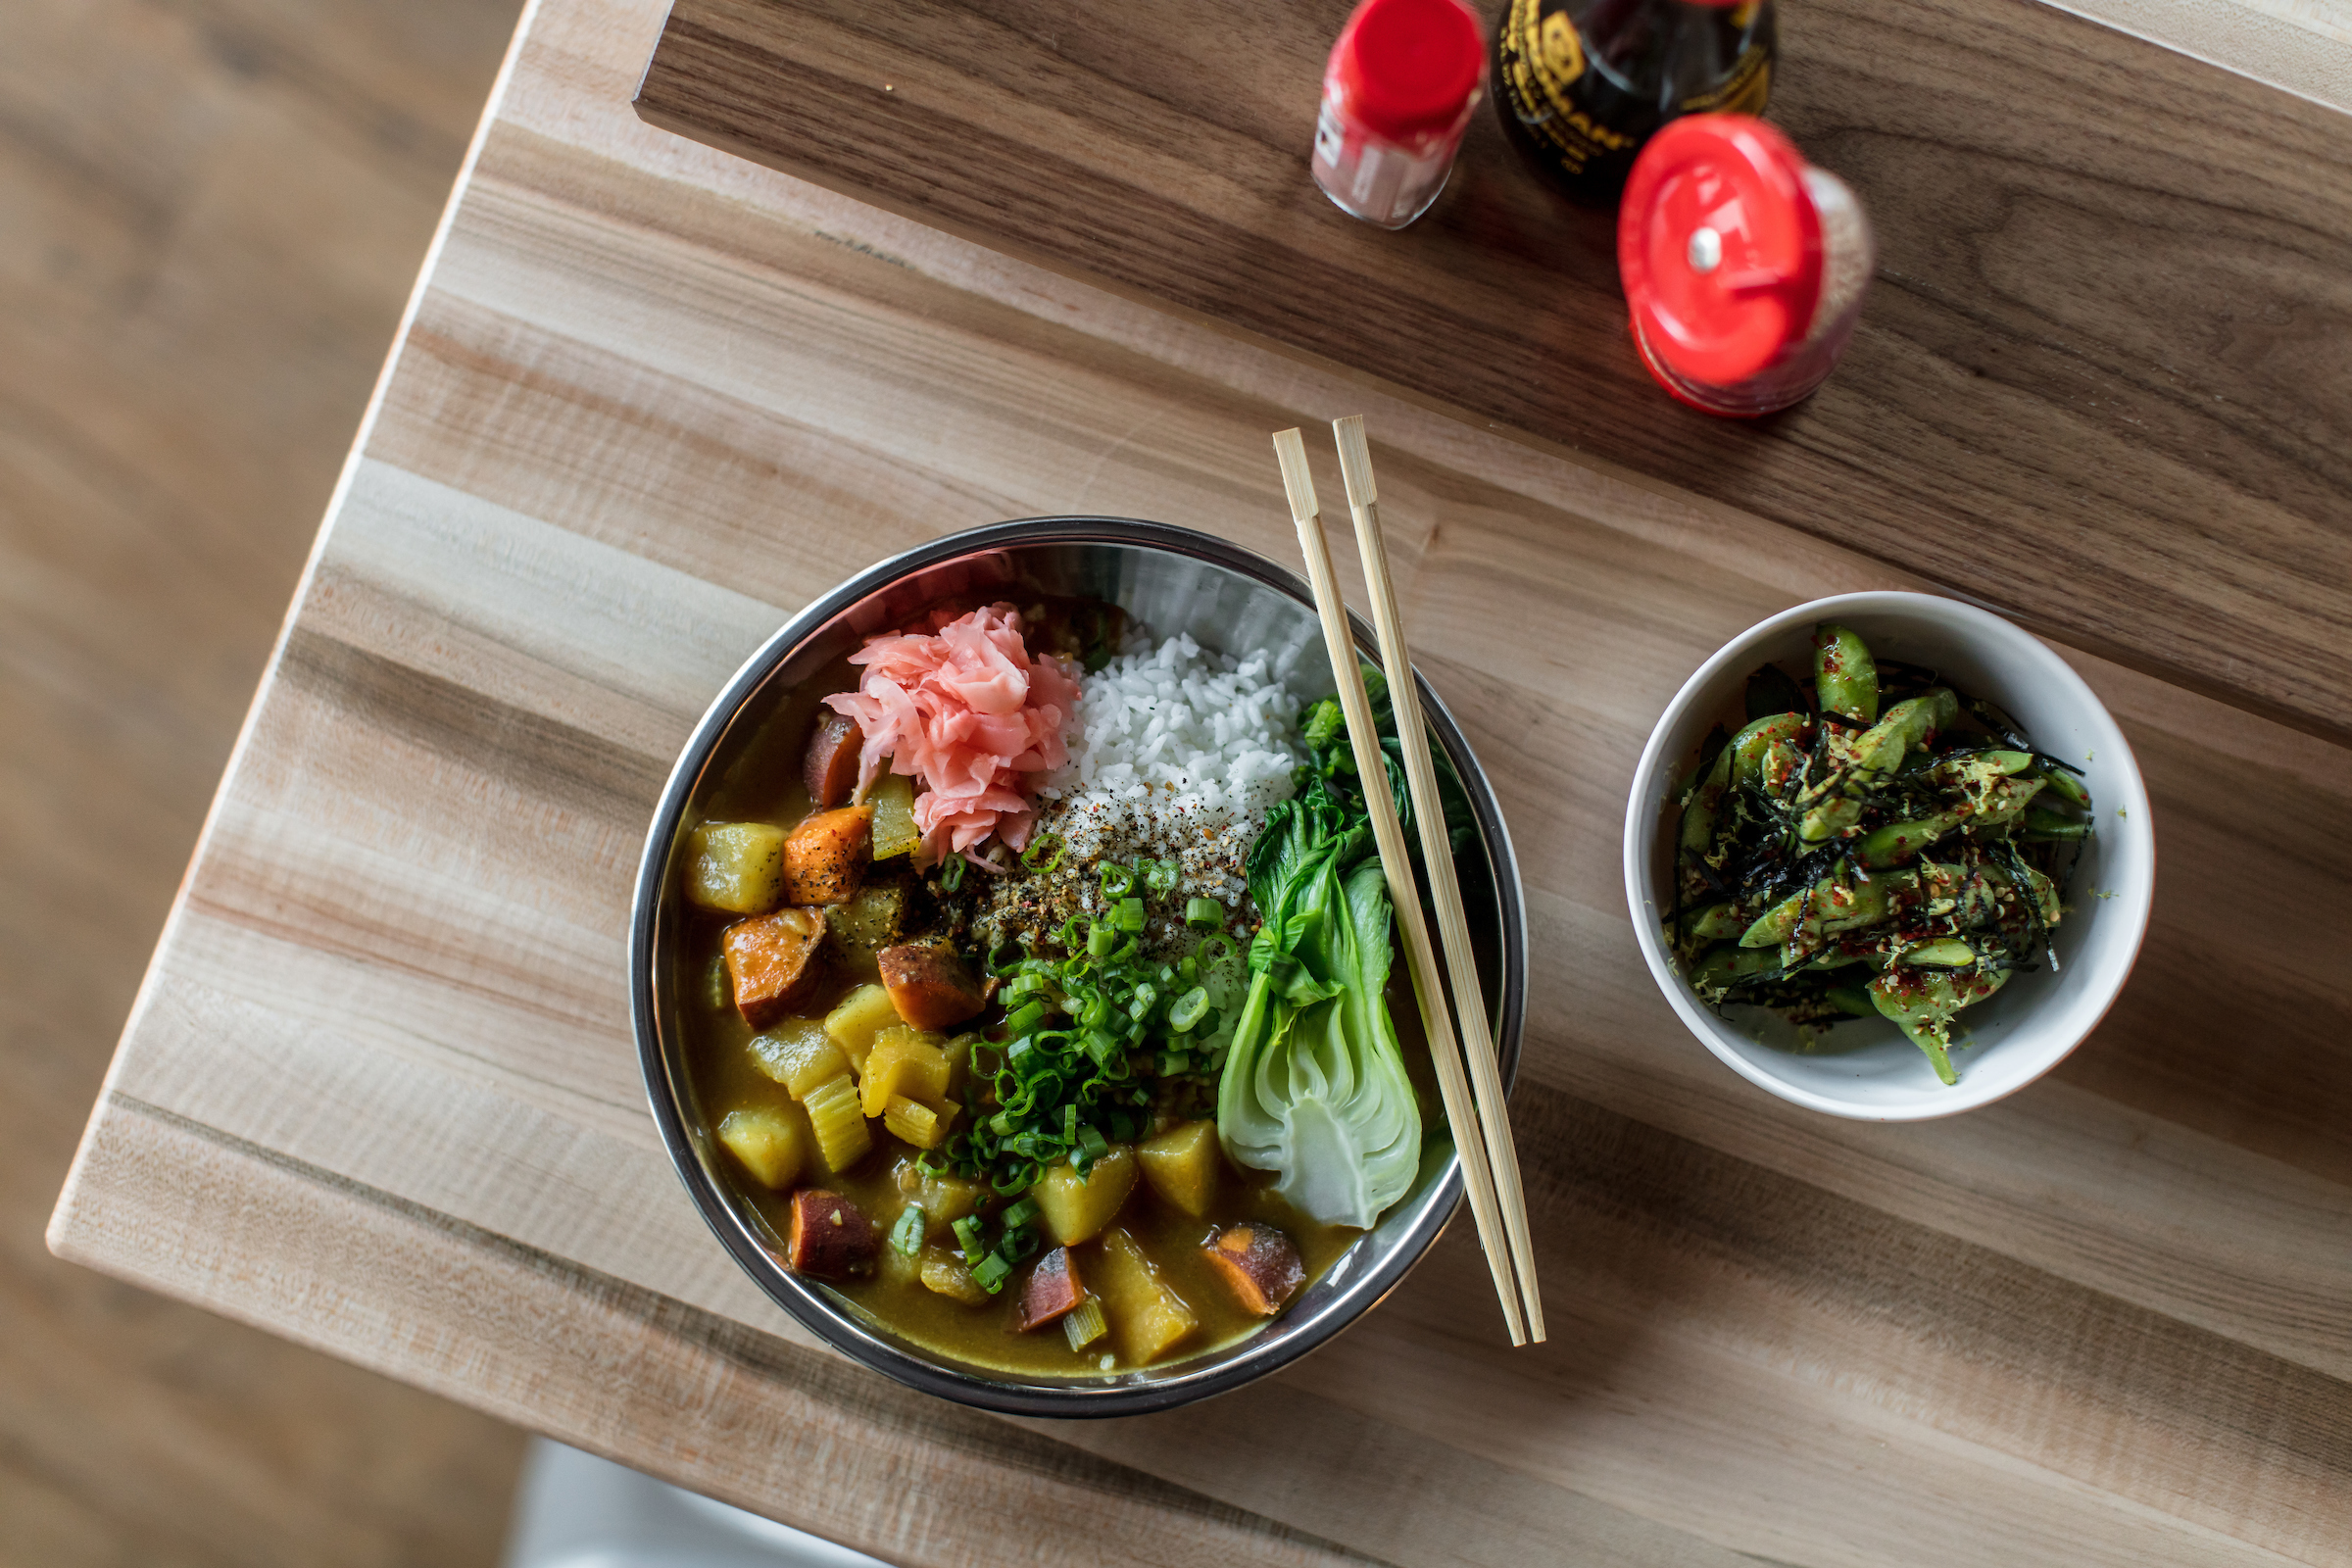 A bowl of golden curry and rice with bok choy and veggies with a side of edamame.